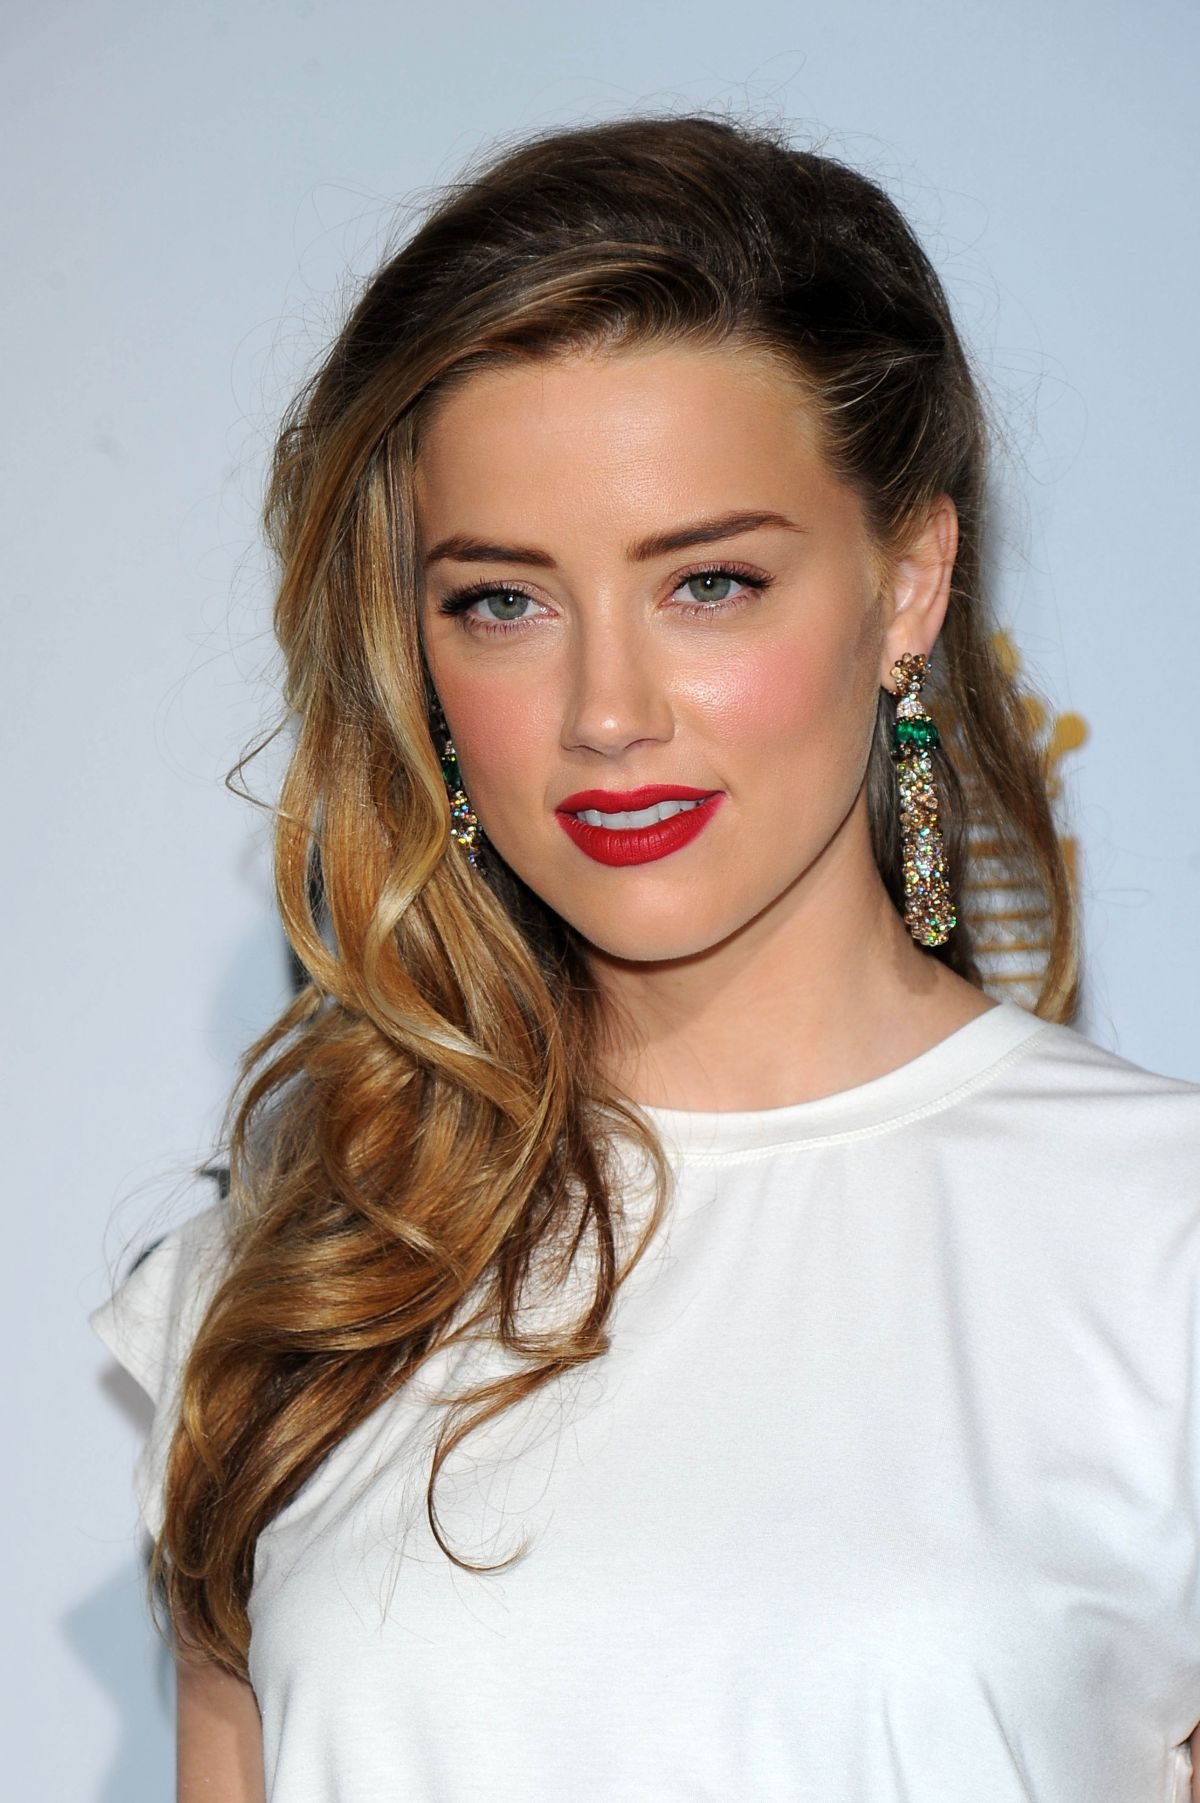 Amber Heard At De Grisogono Amber Heard